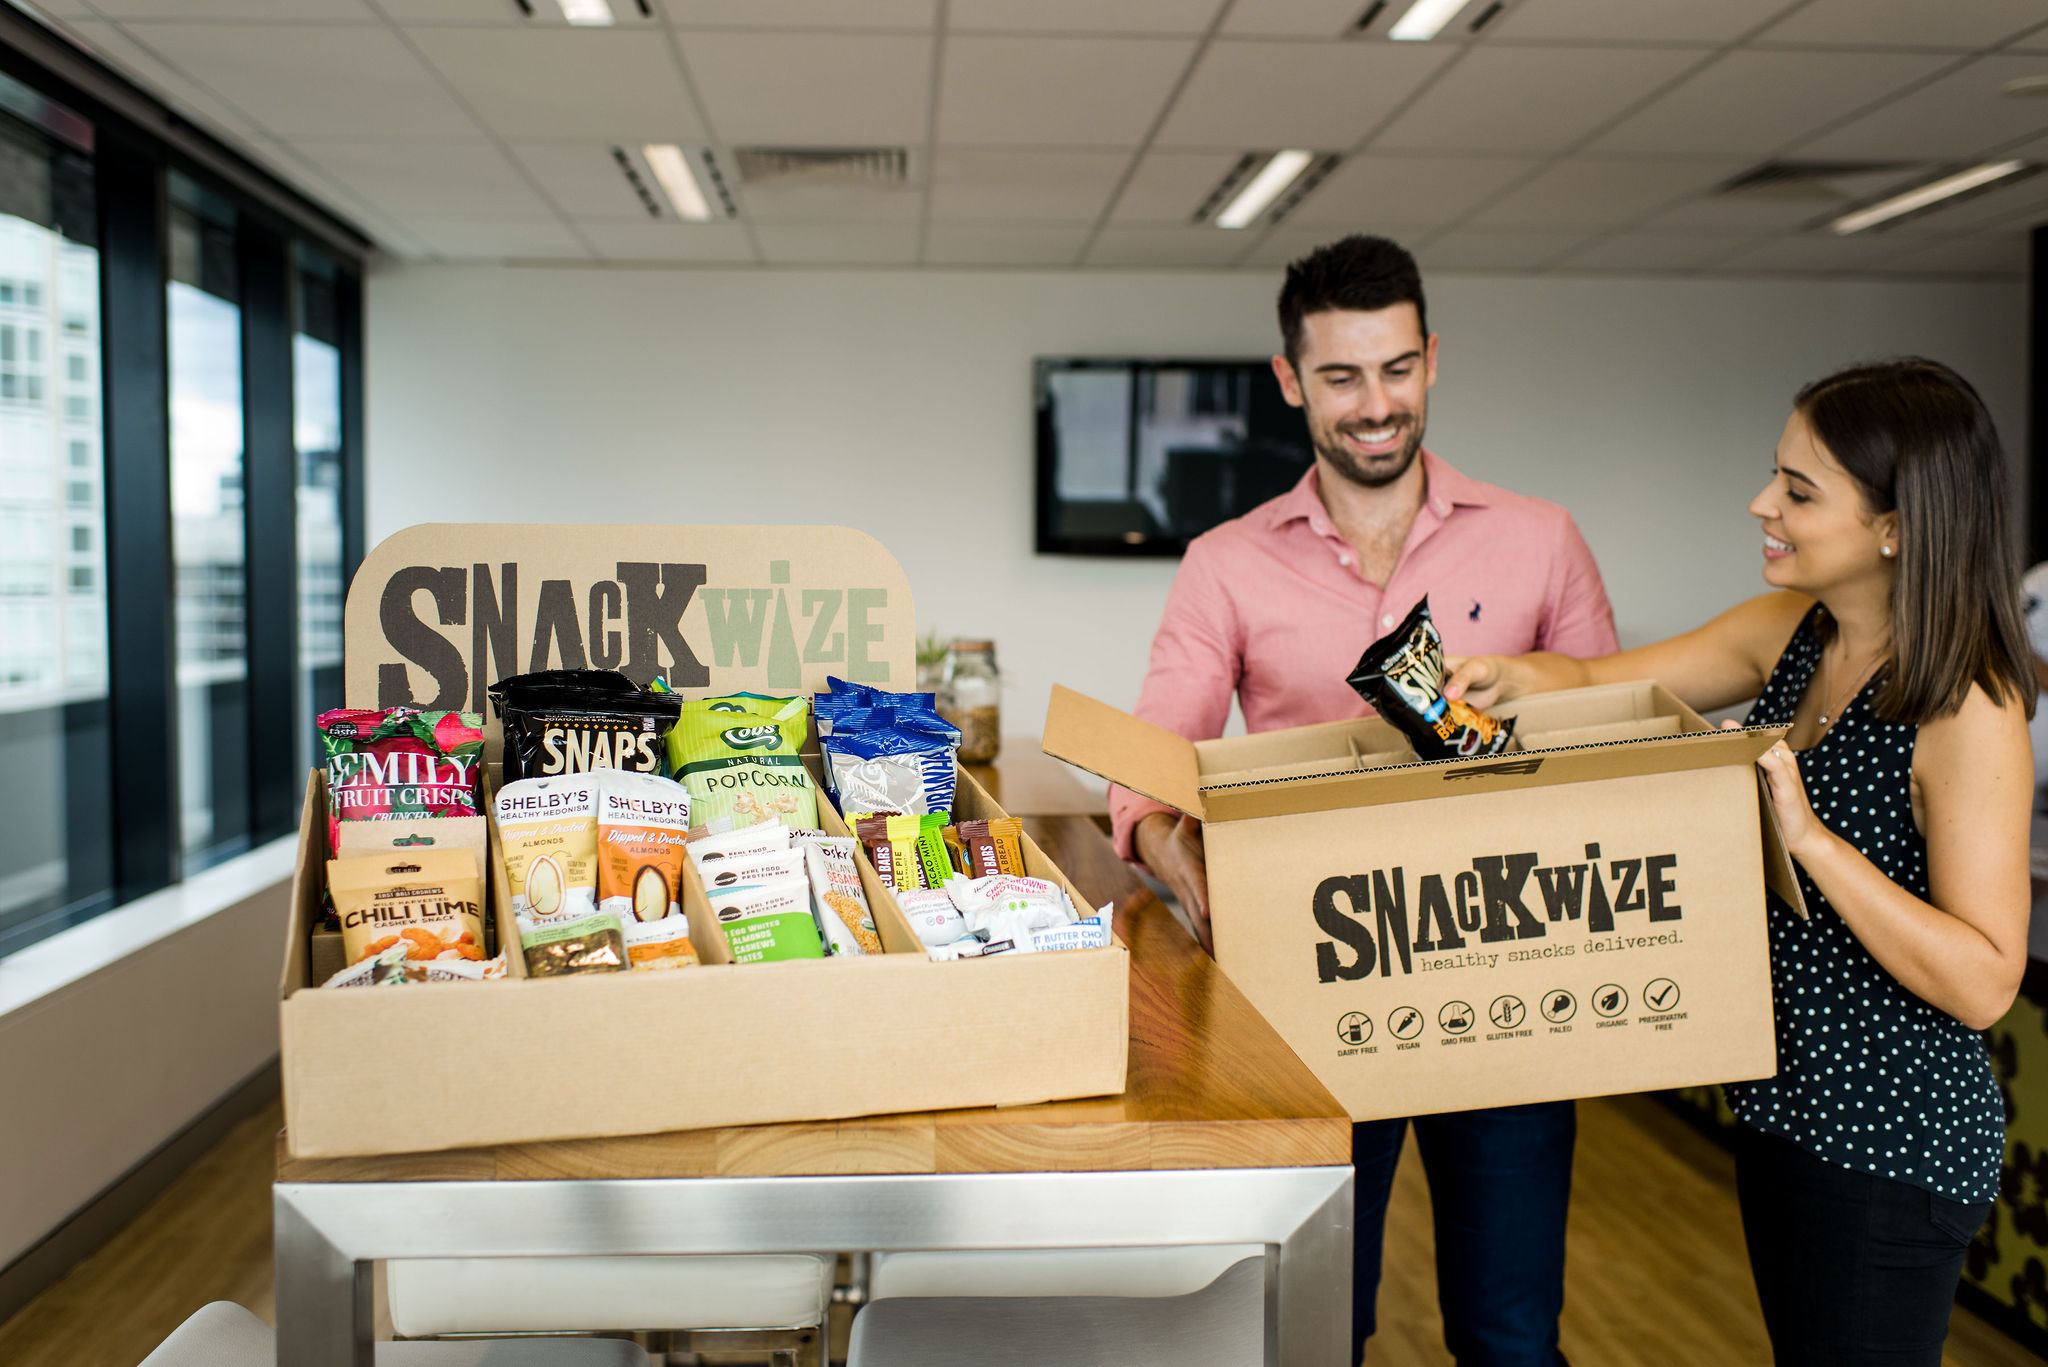 Snacking Culture Is Changing to Healthier, More Convenient Options